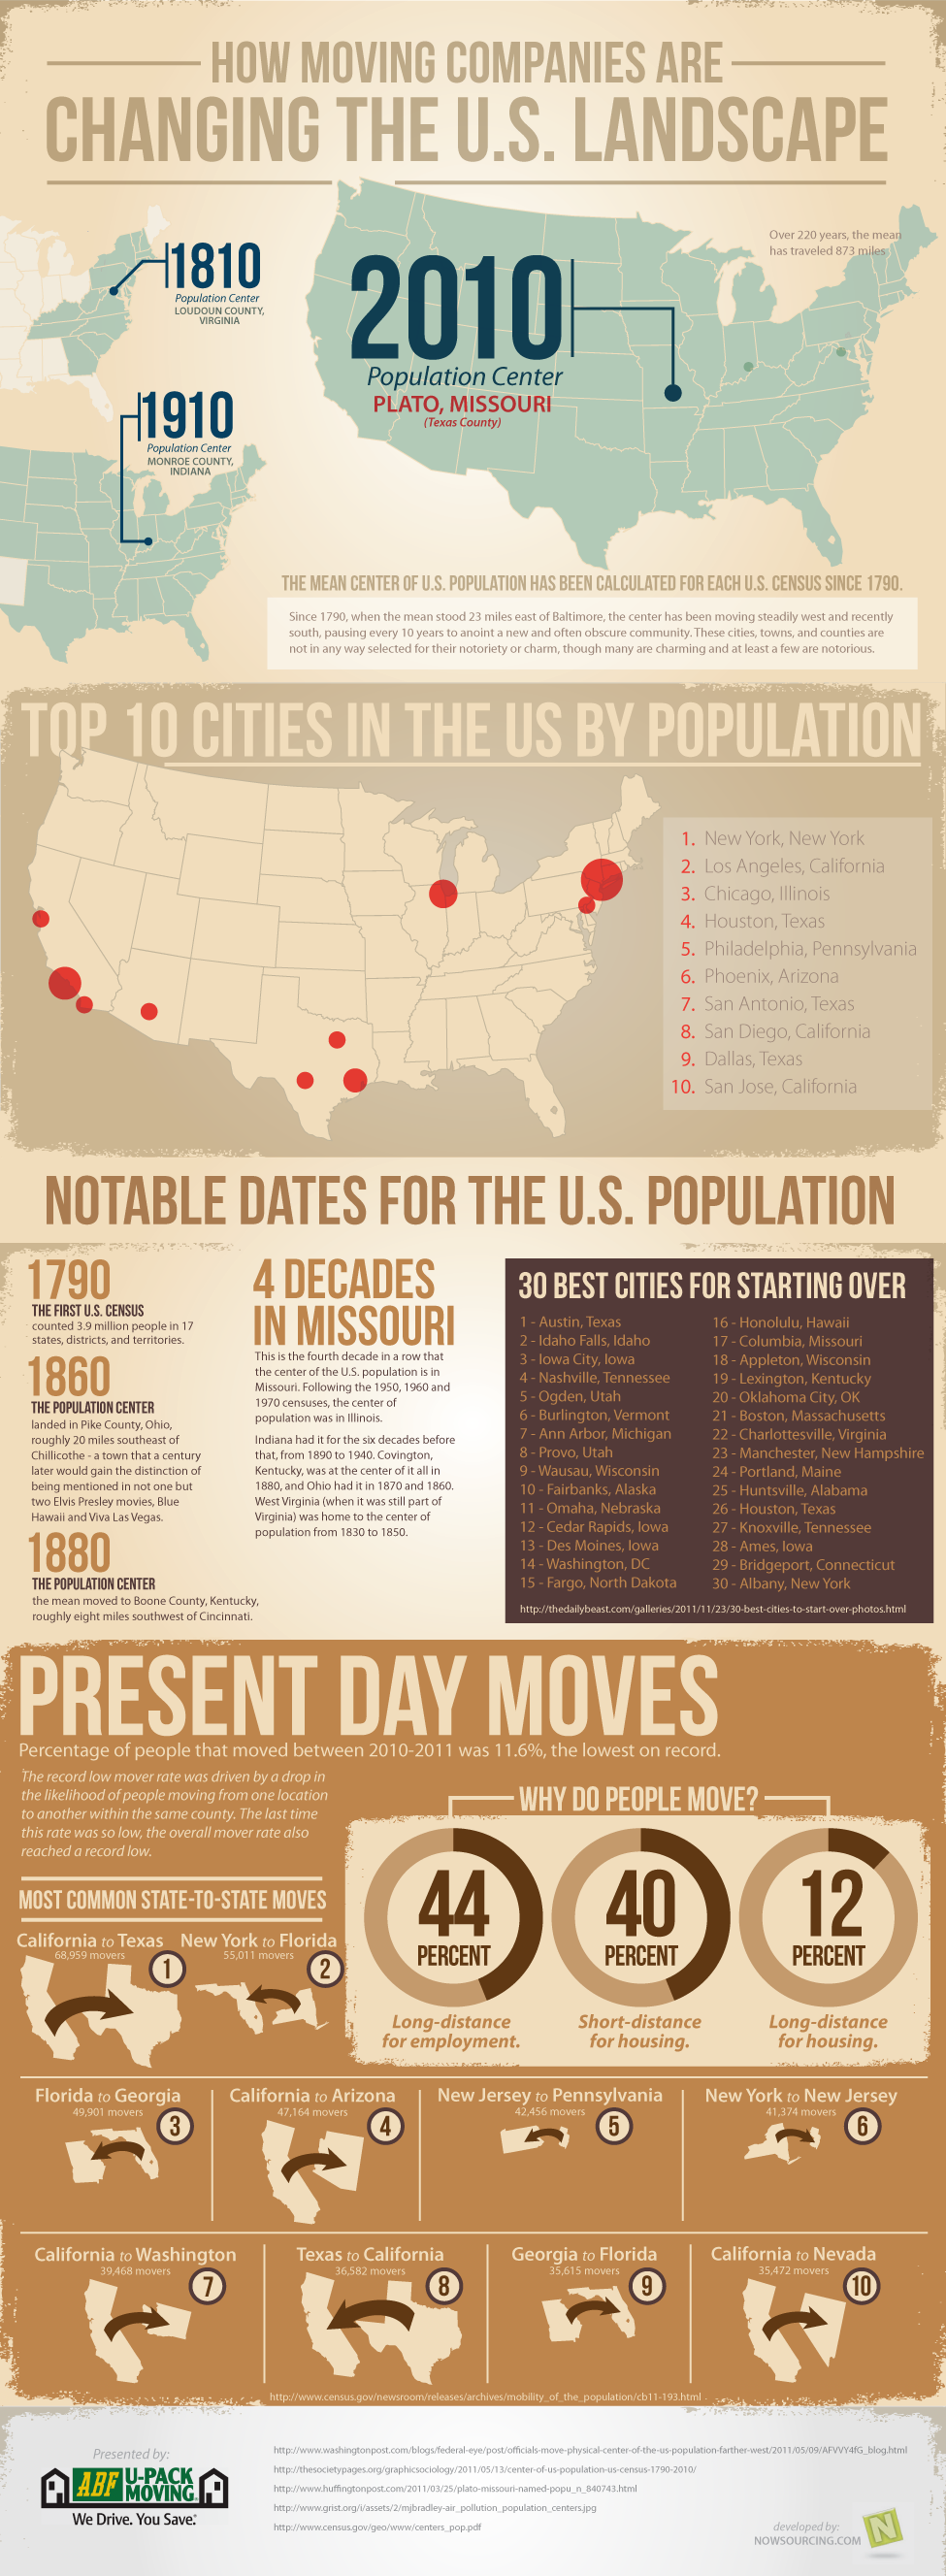 How Moving Companies are Changing the U.S. Landscape